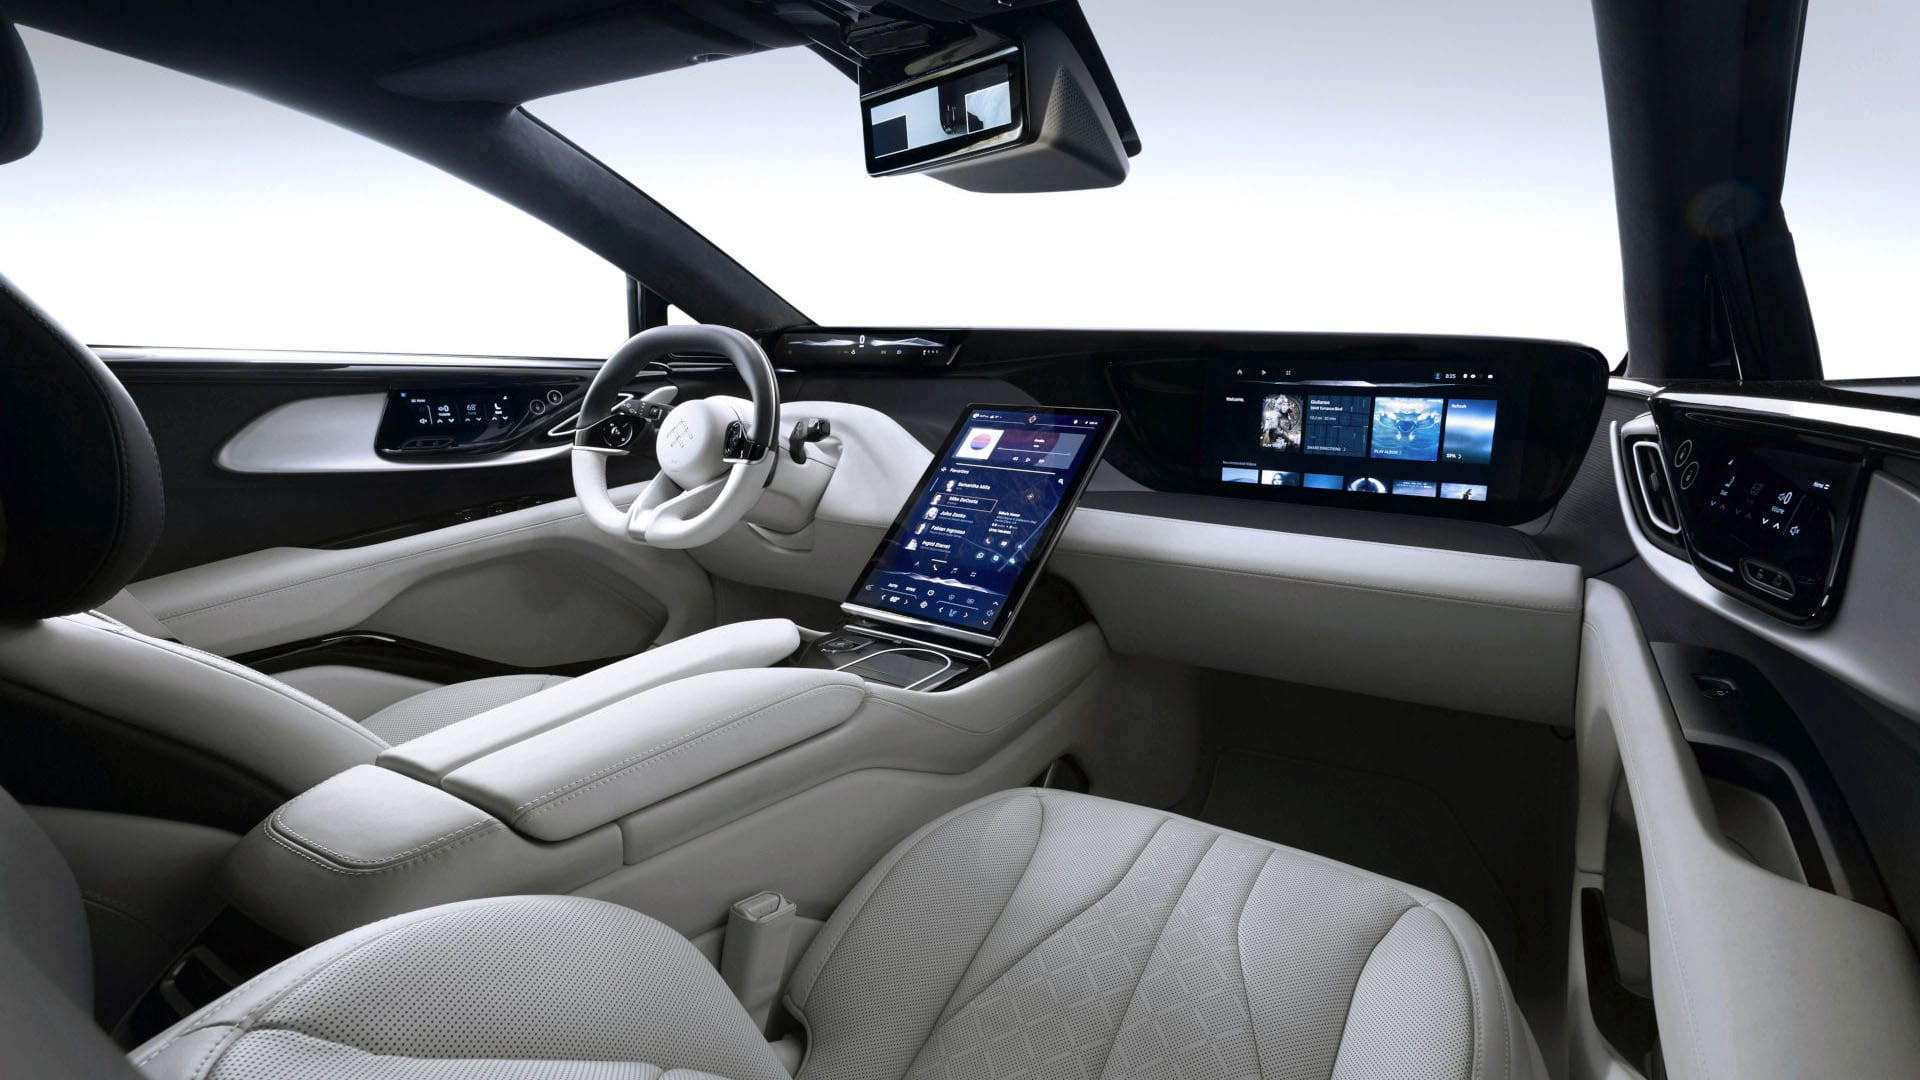 U.S.-Chinese joint startup Faraday Future has shared the interior shots of its first production-ready vehicle, the all-electric crossover SUV named FF 91. There is much to look at, so hop in.